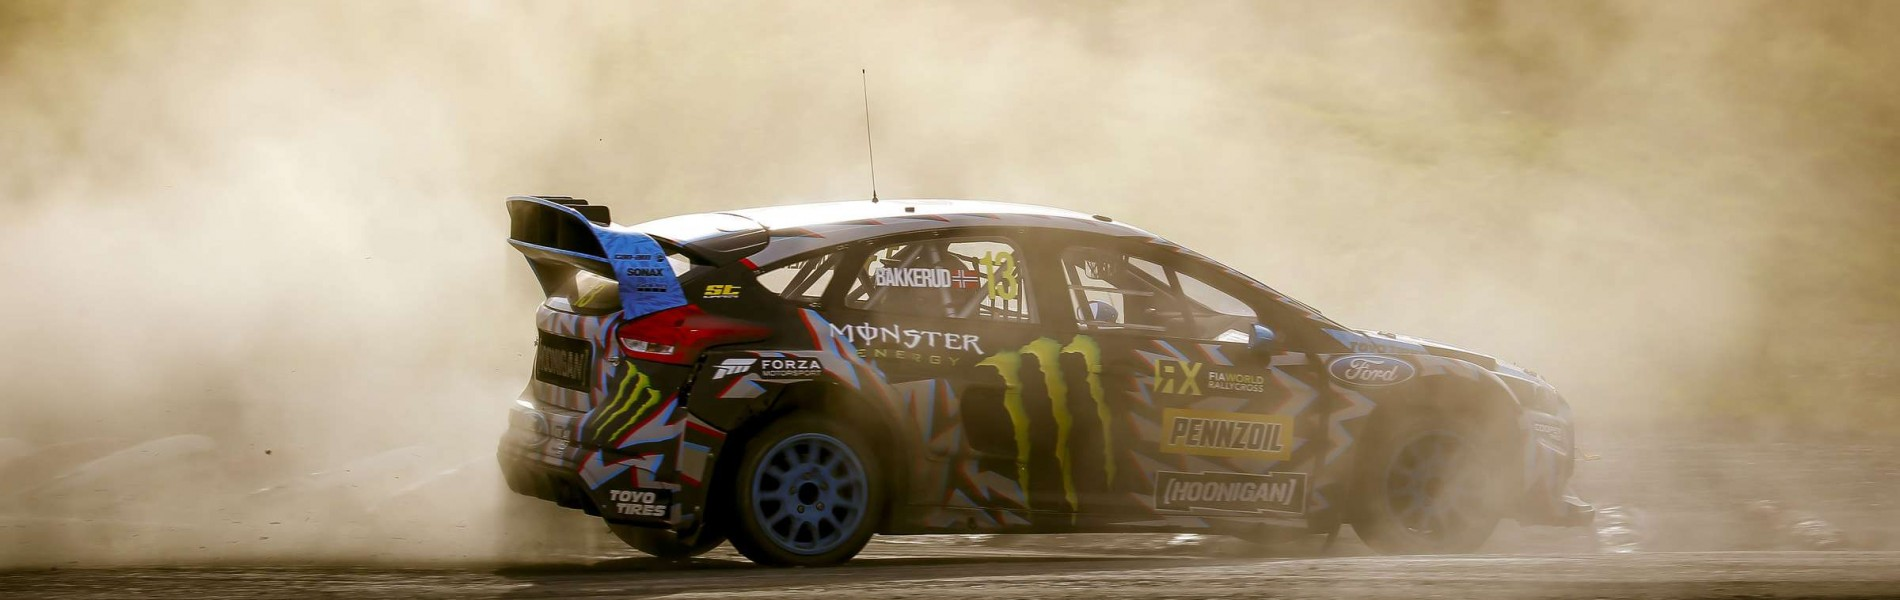 Friday images of Andreas Bakkerud at the 2017 World RX of Norway